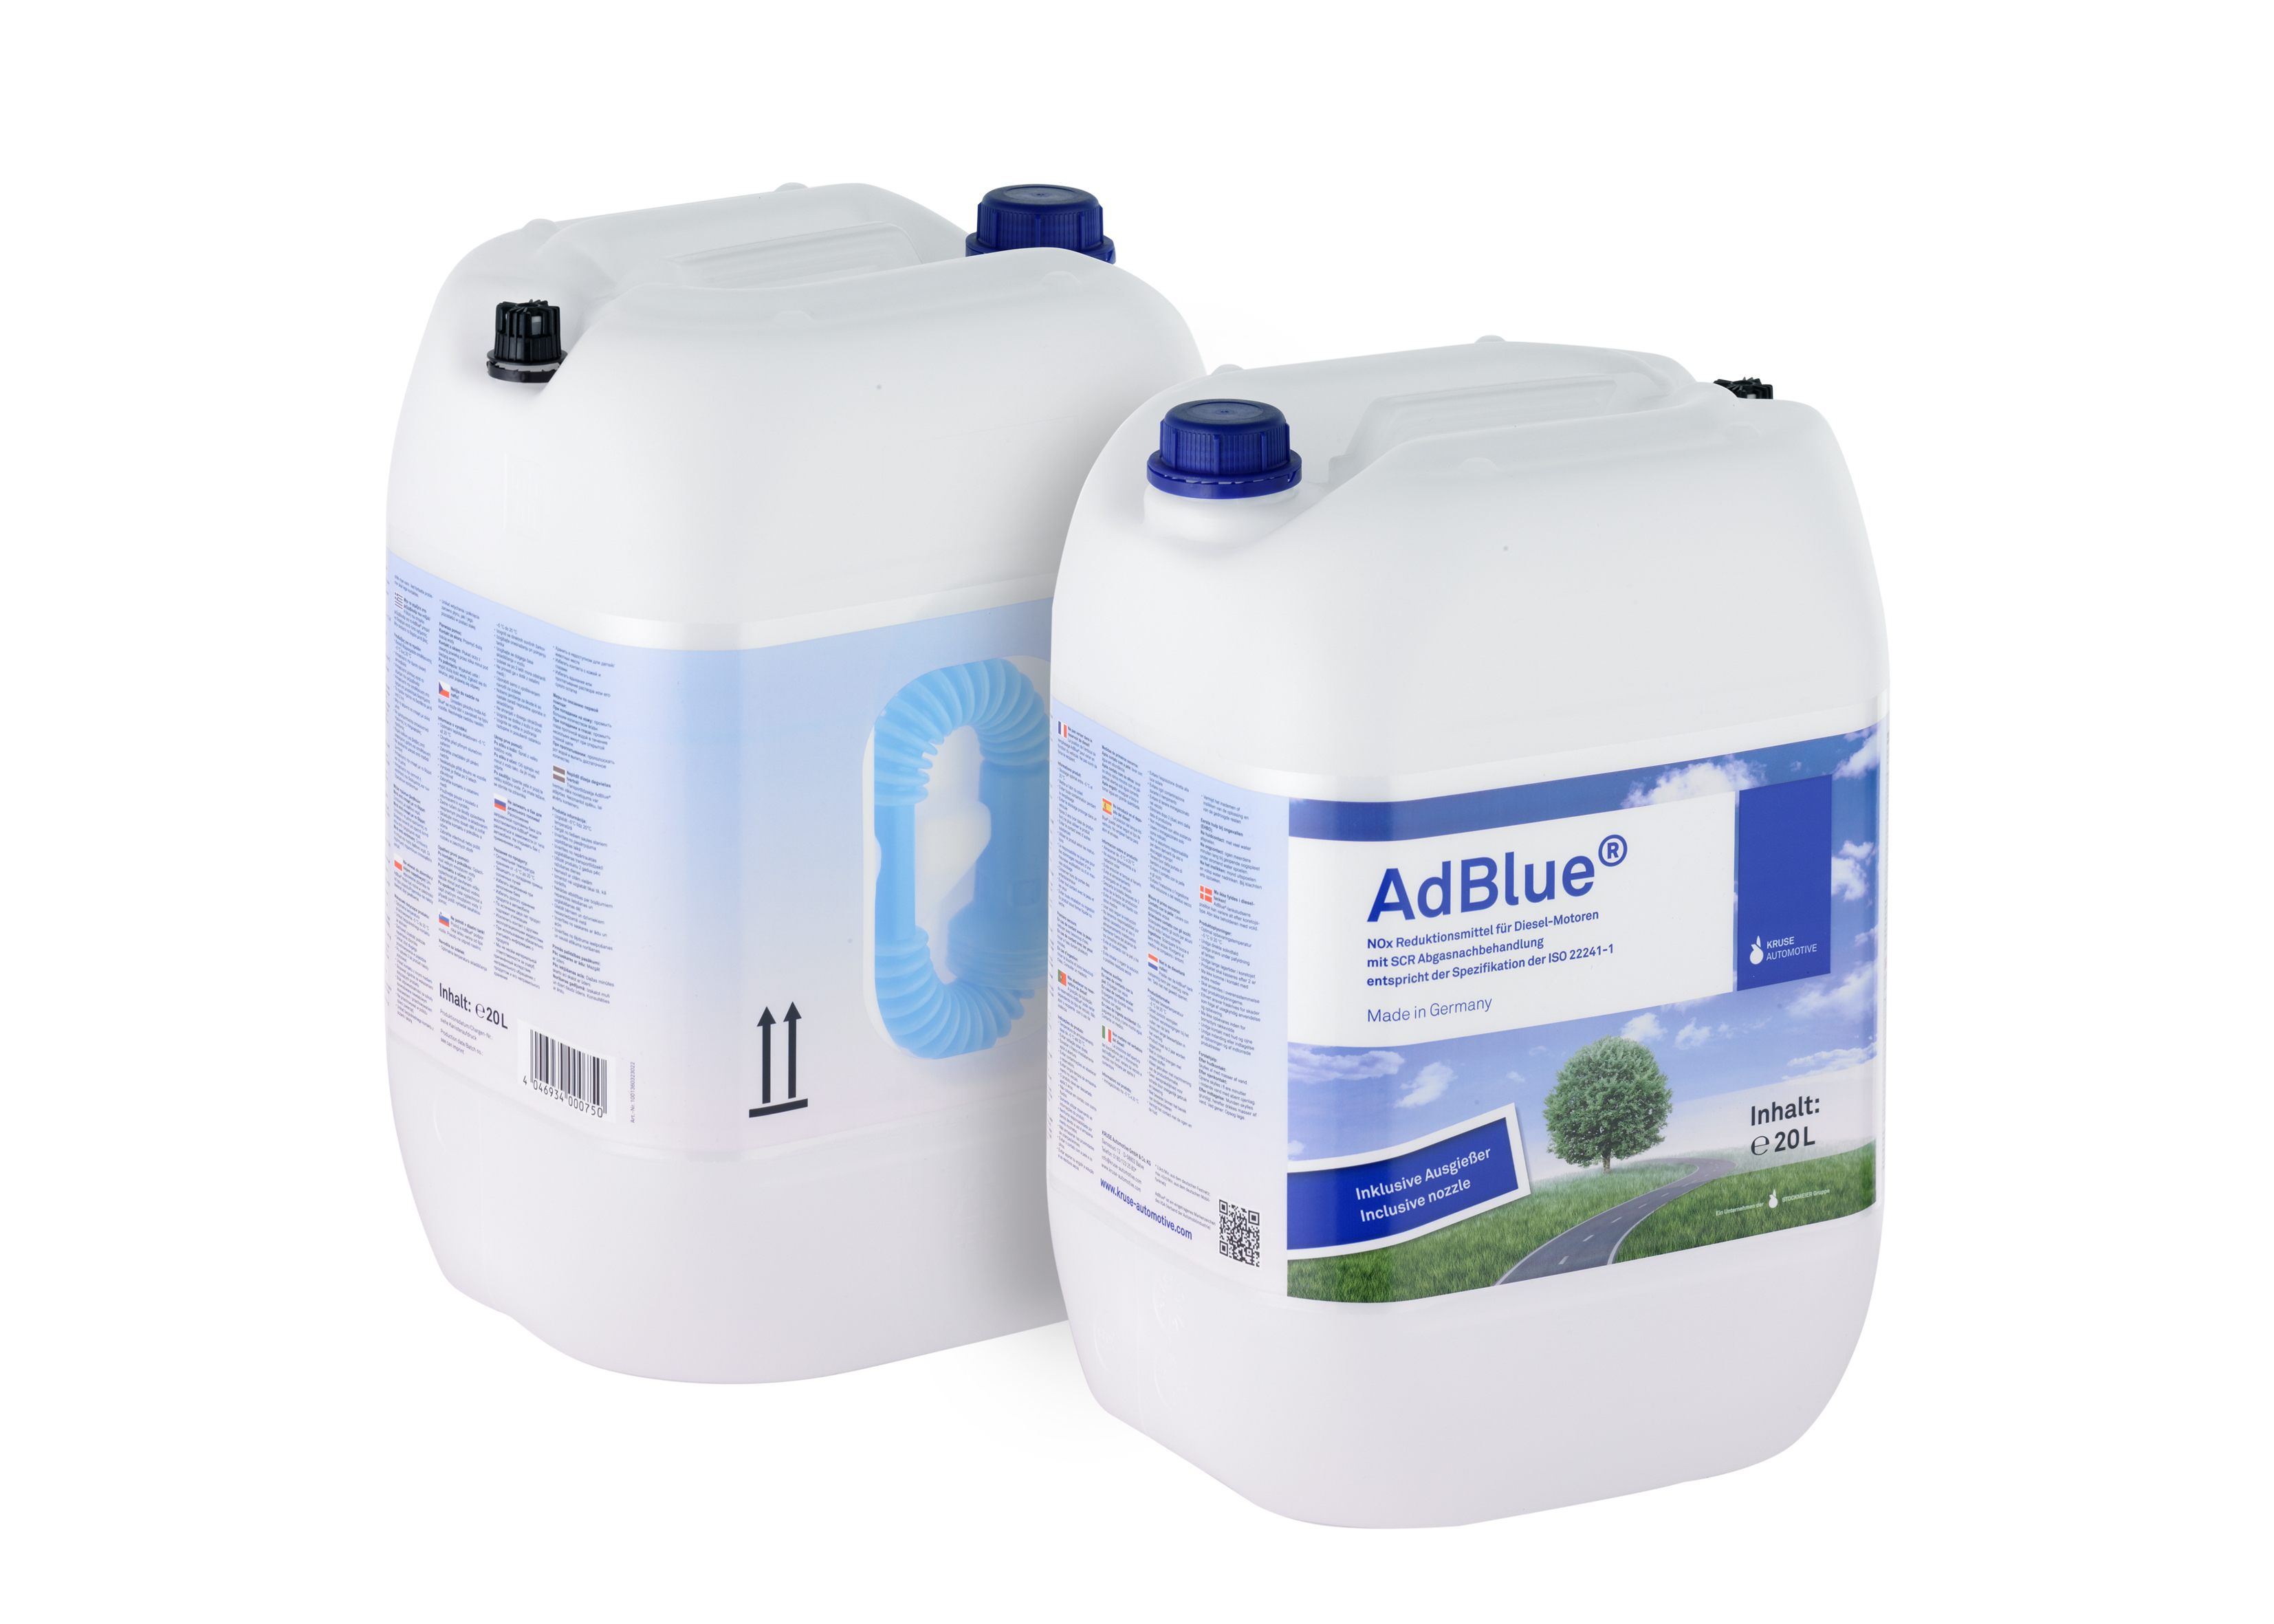 20 litre canister AdBlue®